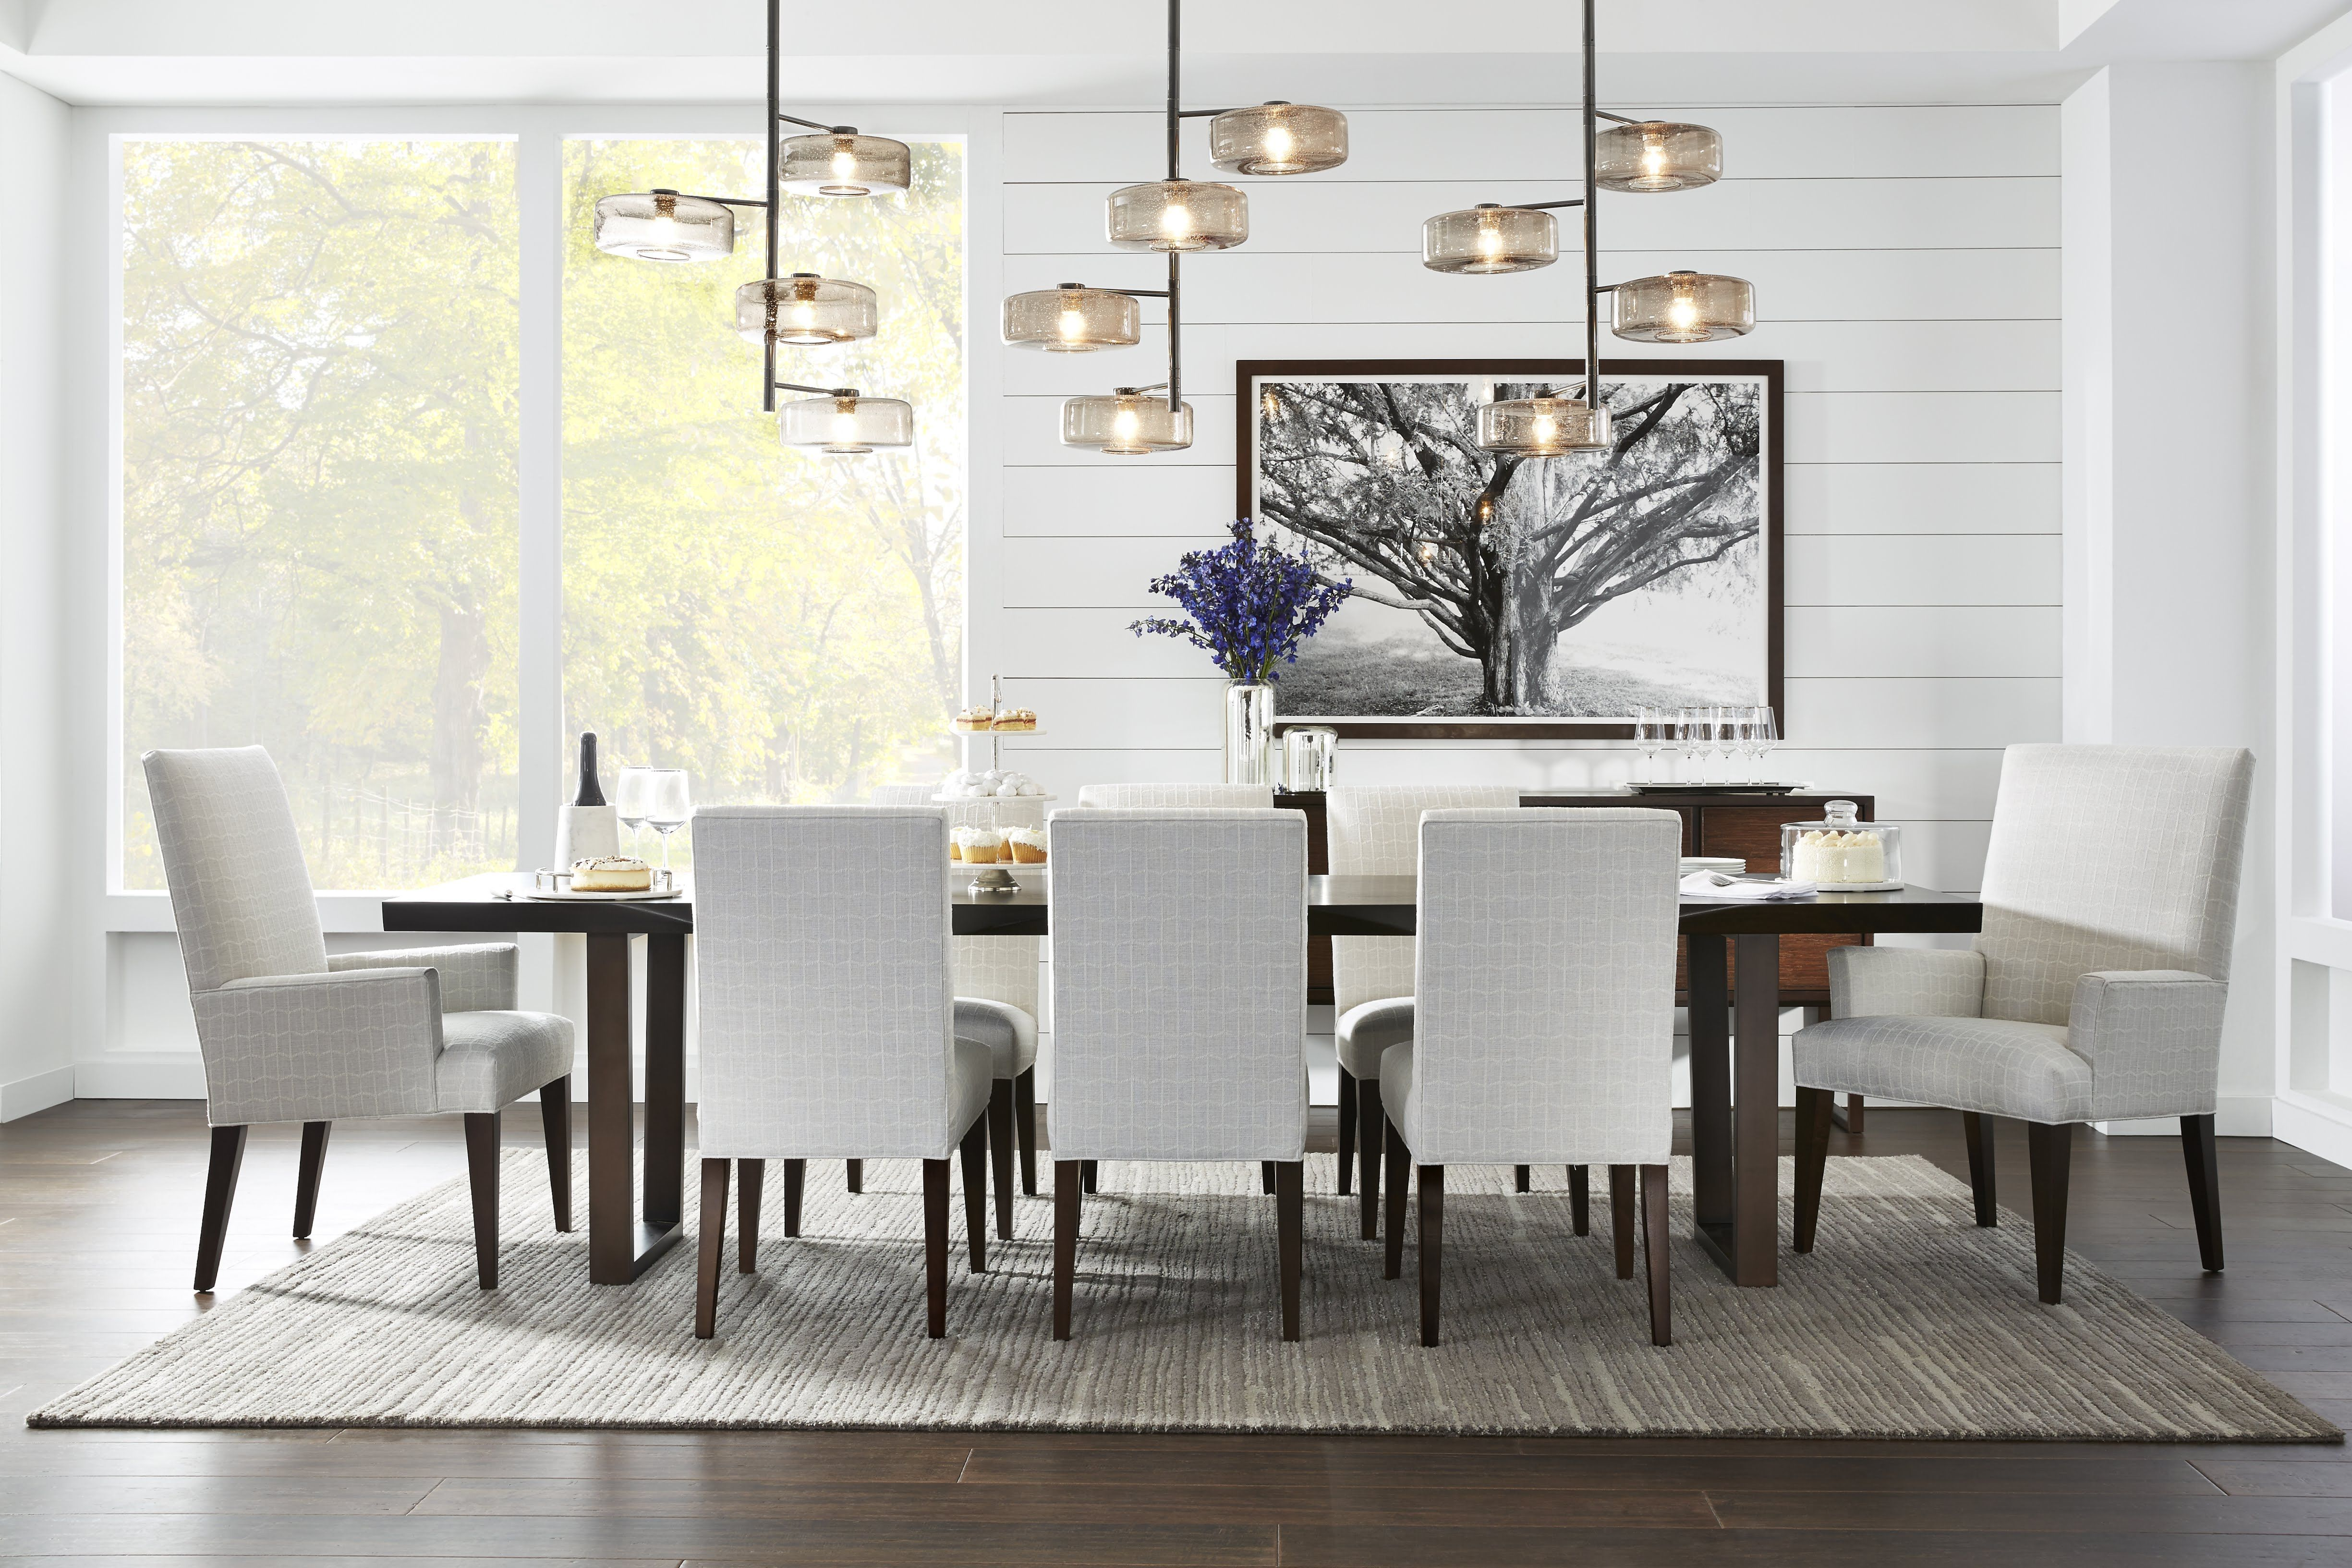 Mg Bw Span The Seasons With A Rosewood Topped Dining Table And